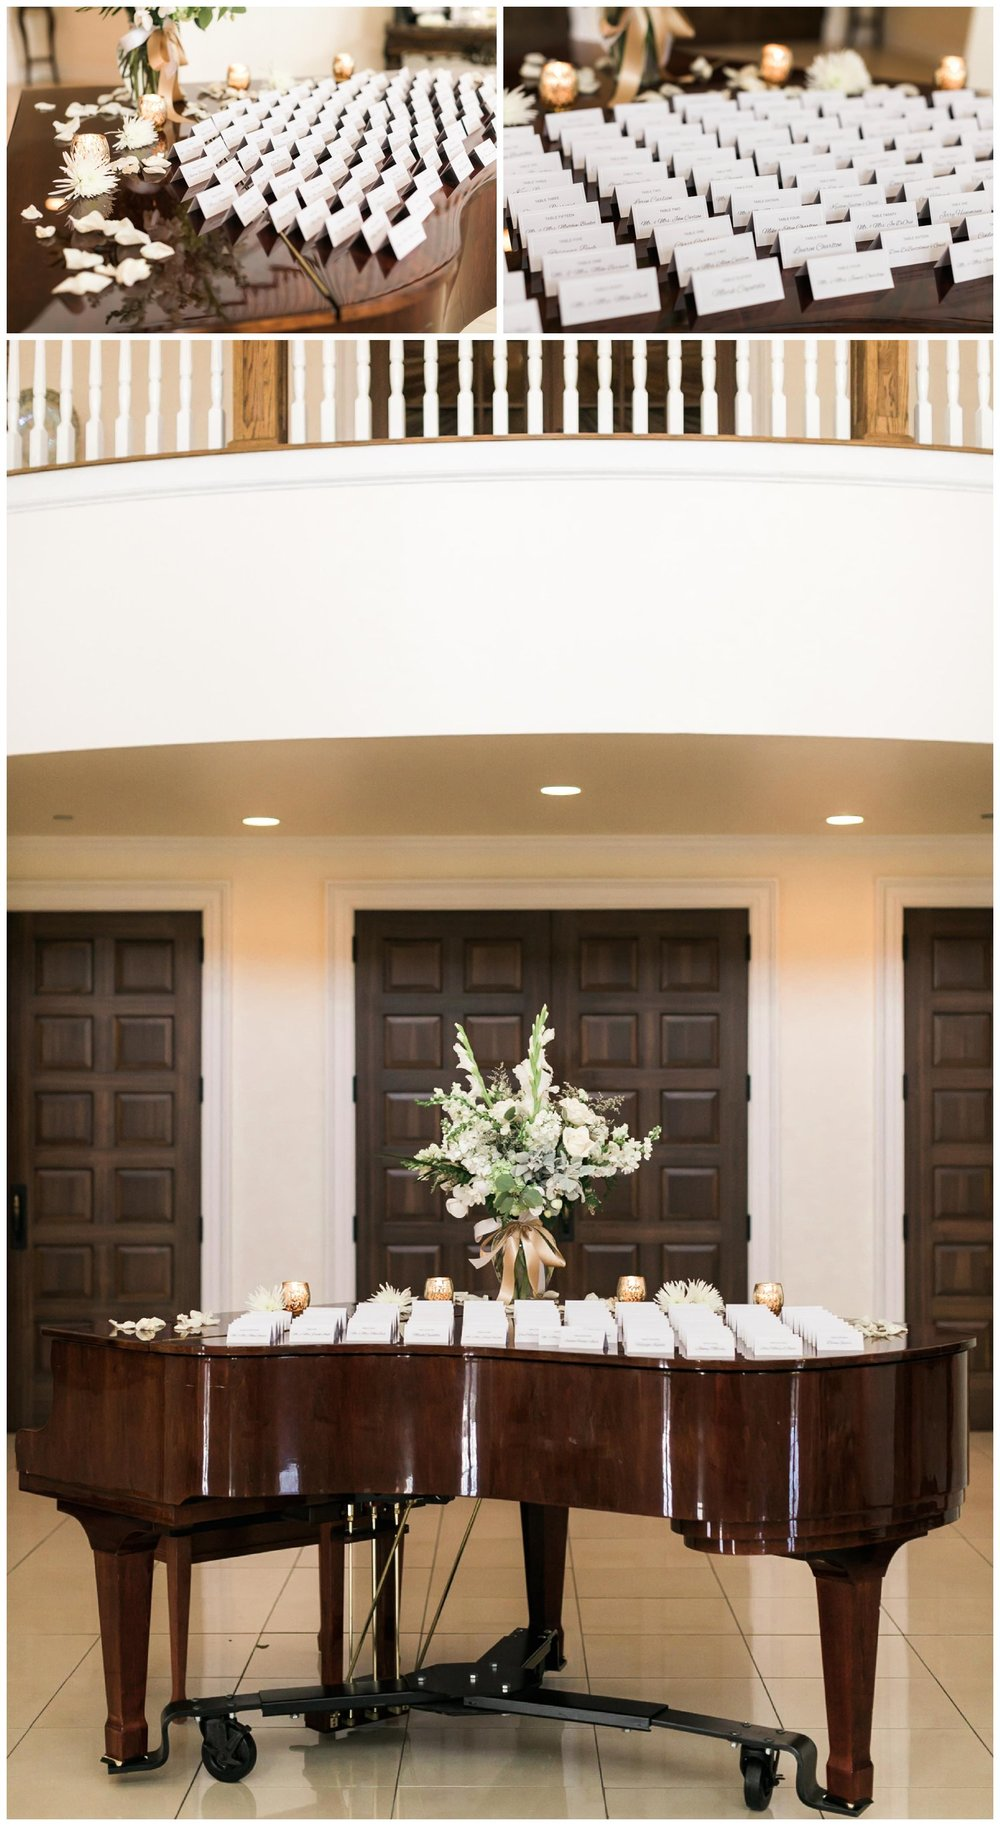 JenandEd_NewJerseyWedding_CarriageHouse_Galloway_NJ__SouthJersey_Wedding_Photographer_MagdalenaStudios_0264.jpg